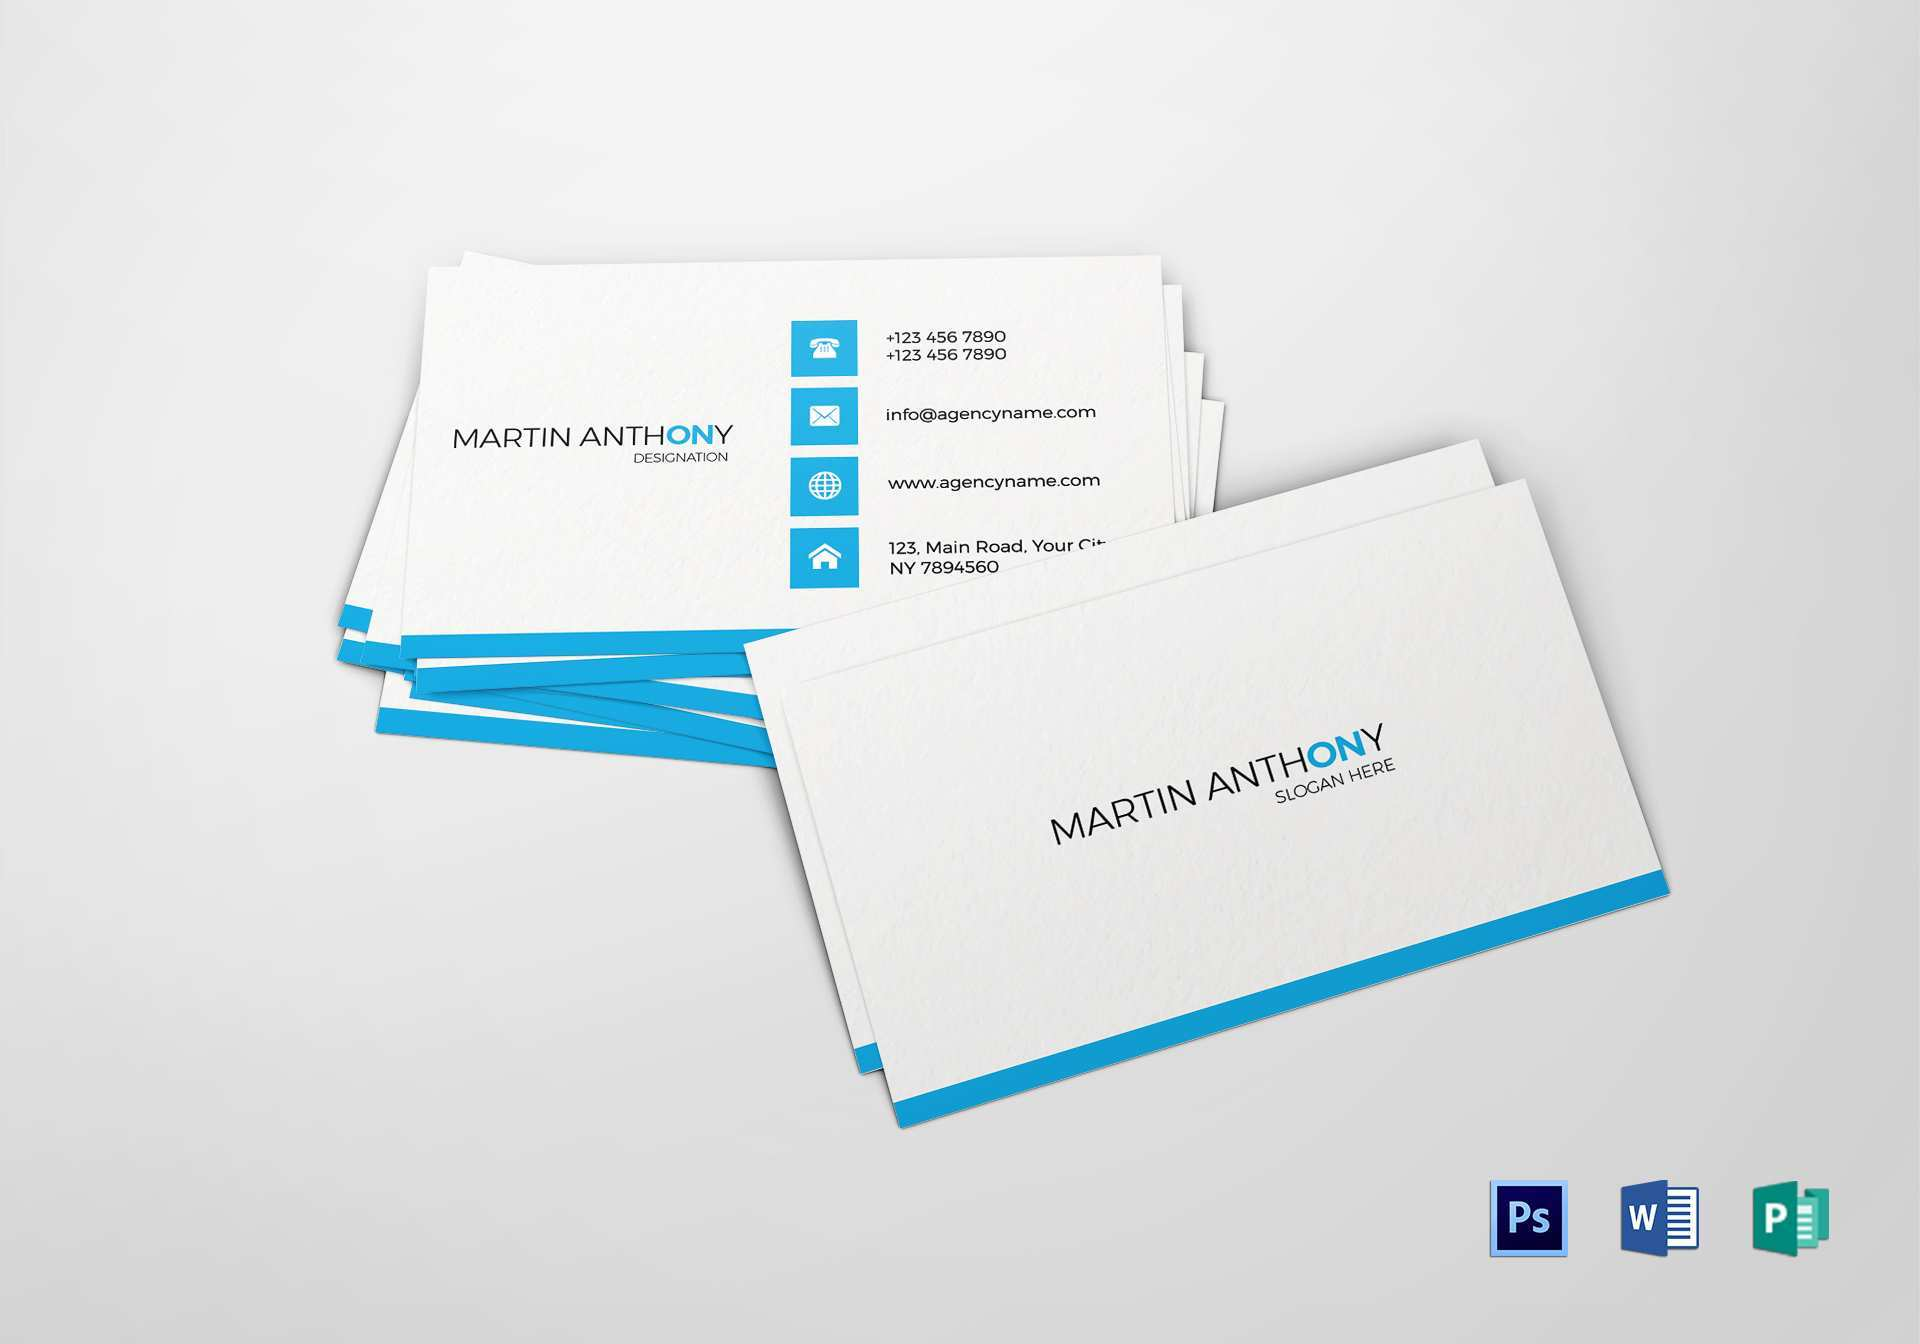 74 Format Business Card Design Template For Word Layouts for Business Card Design Template For Word